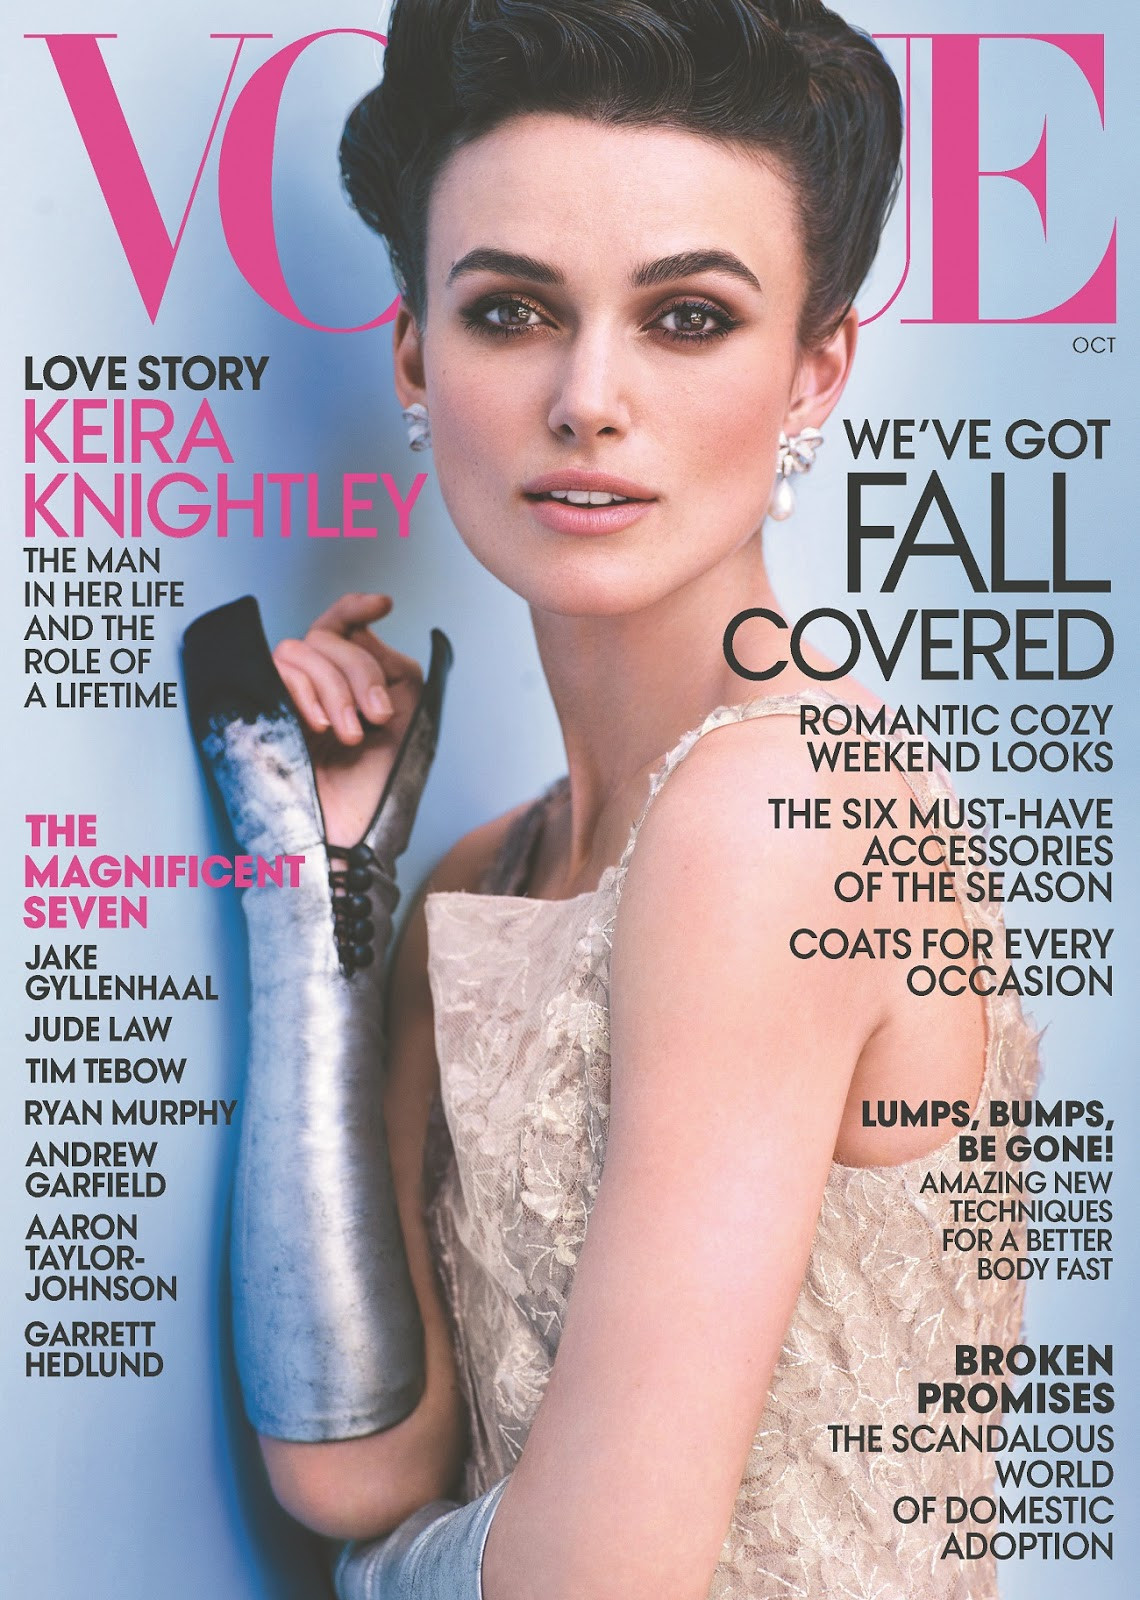 ALL IS RELATIVE: keira knightley U.S. Vogue Magazine October 2012